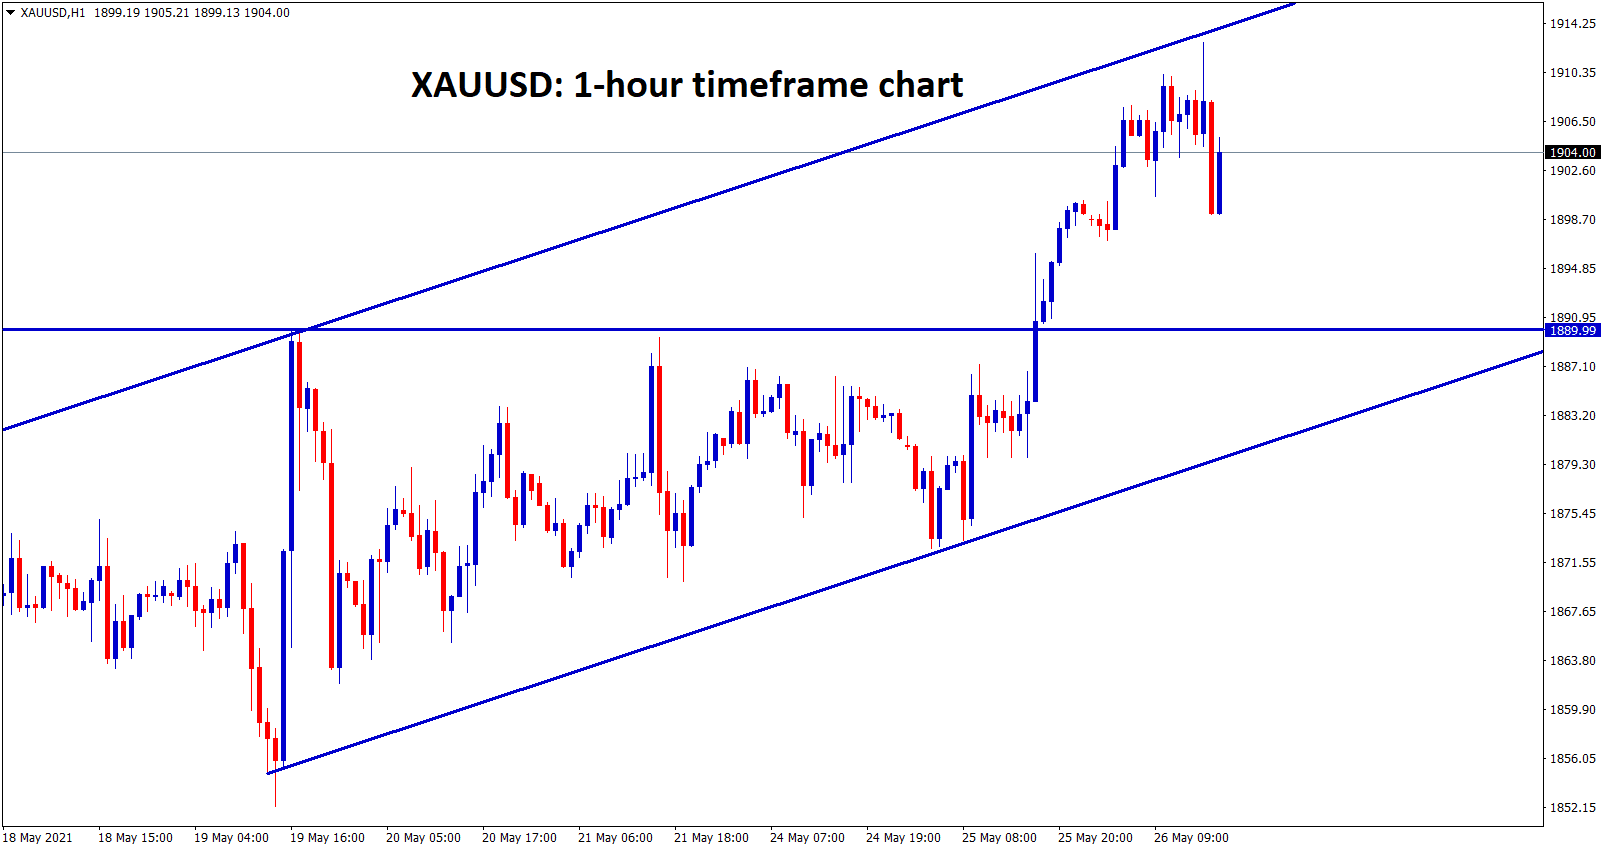 XAUUSD is moving in an Uptrend ascending channel